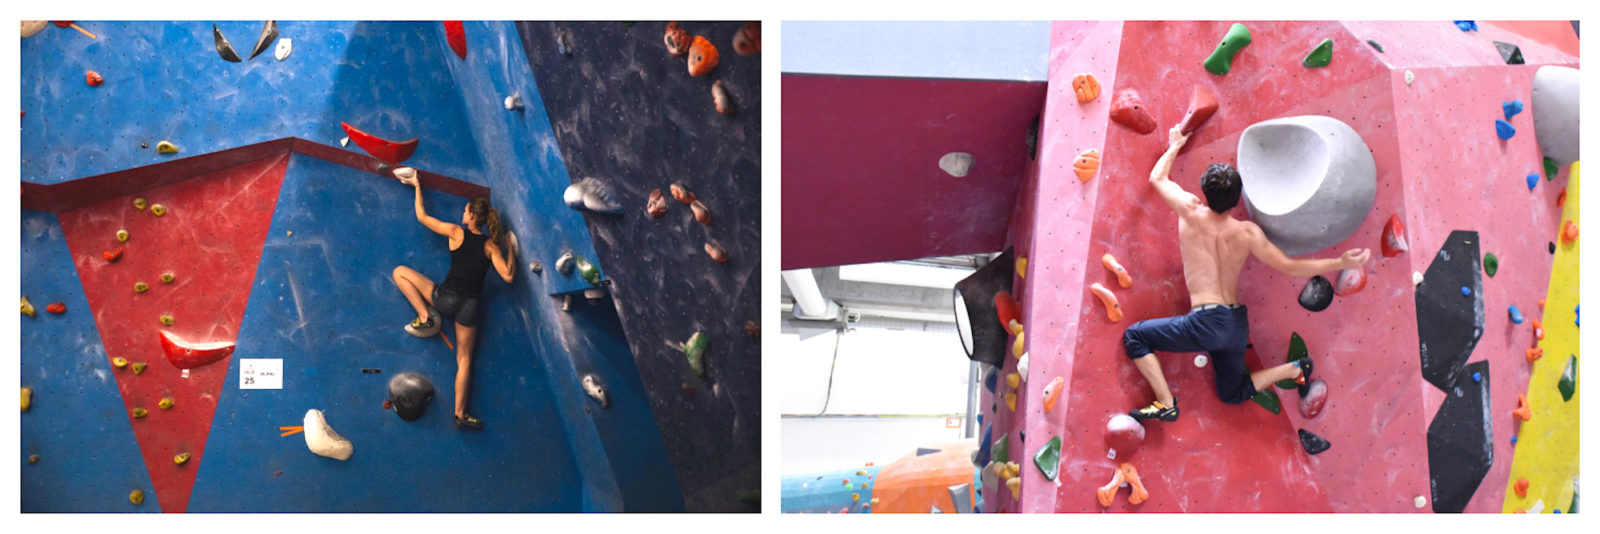 The blue (left) and pink (right) climbing walls at Blockout, a Paris kid-friendly climbing club that organizes children's birthday parties.